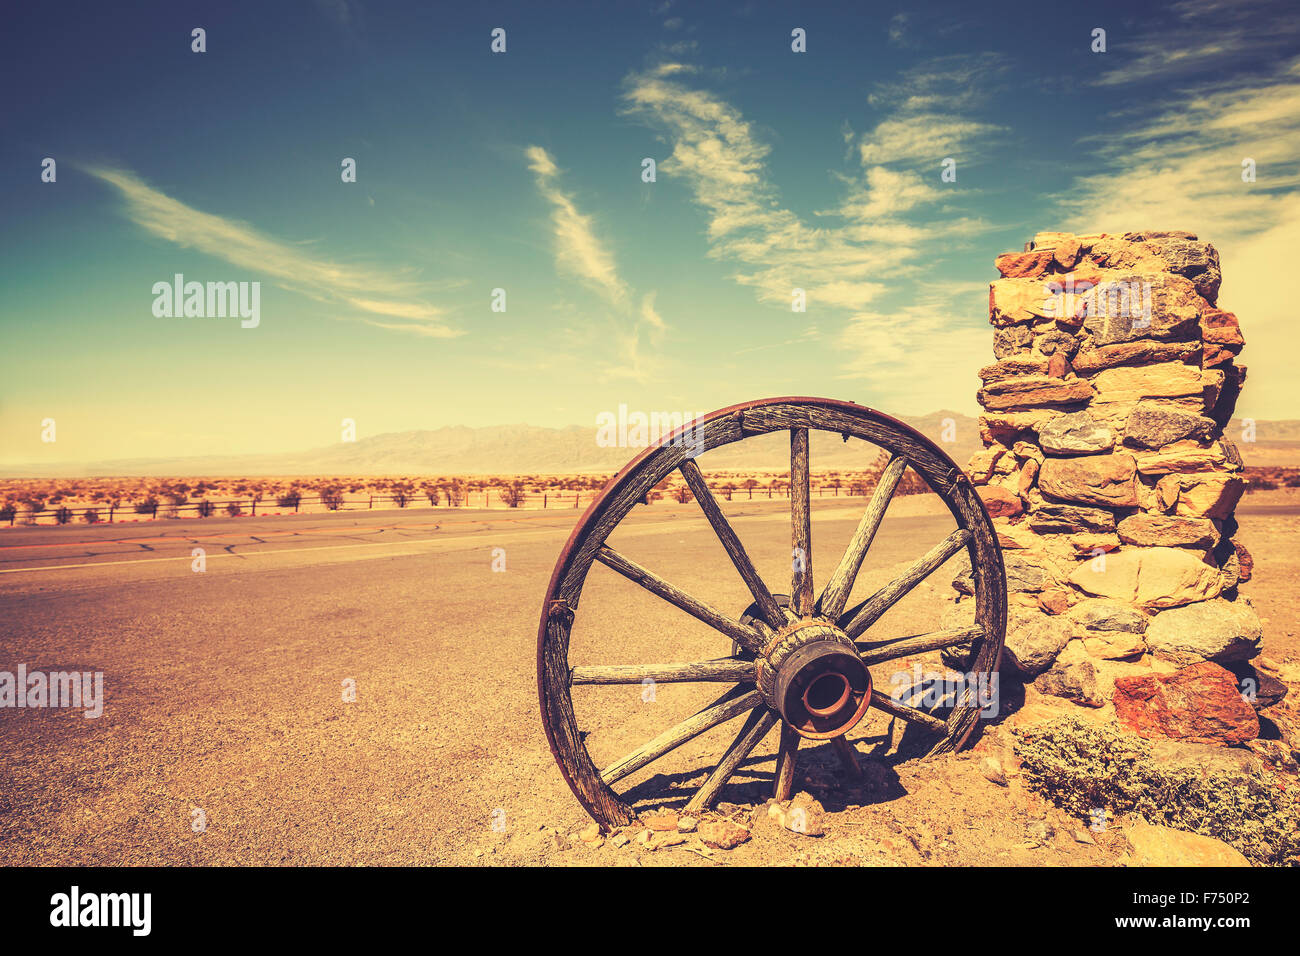 Retro style old cartwheel, wild west concept, Death Valley, USA. - Stock Image